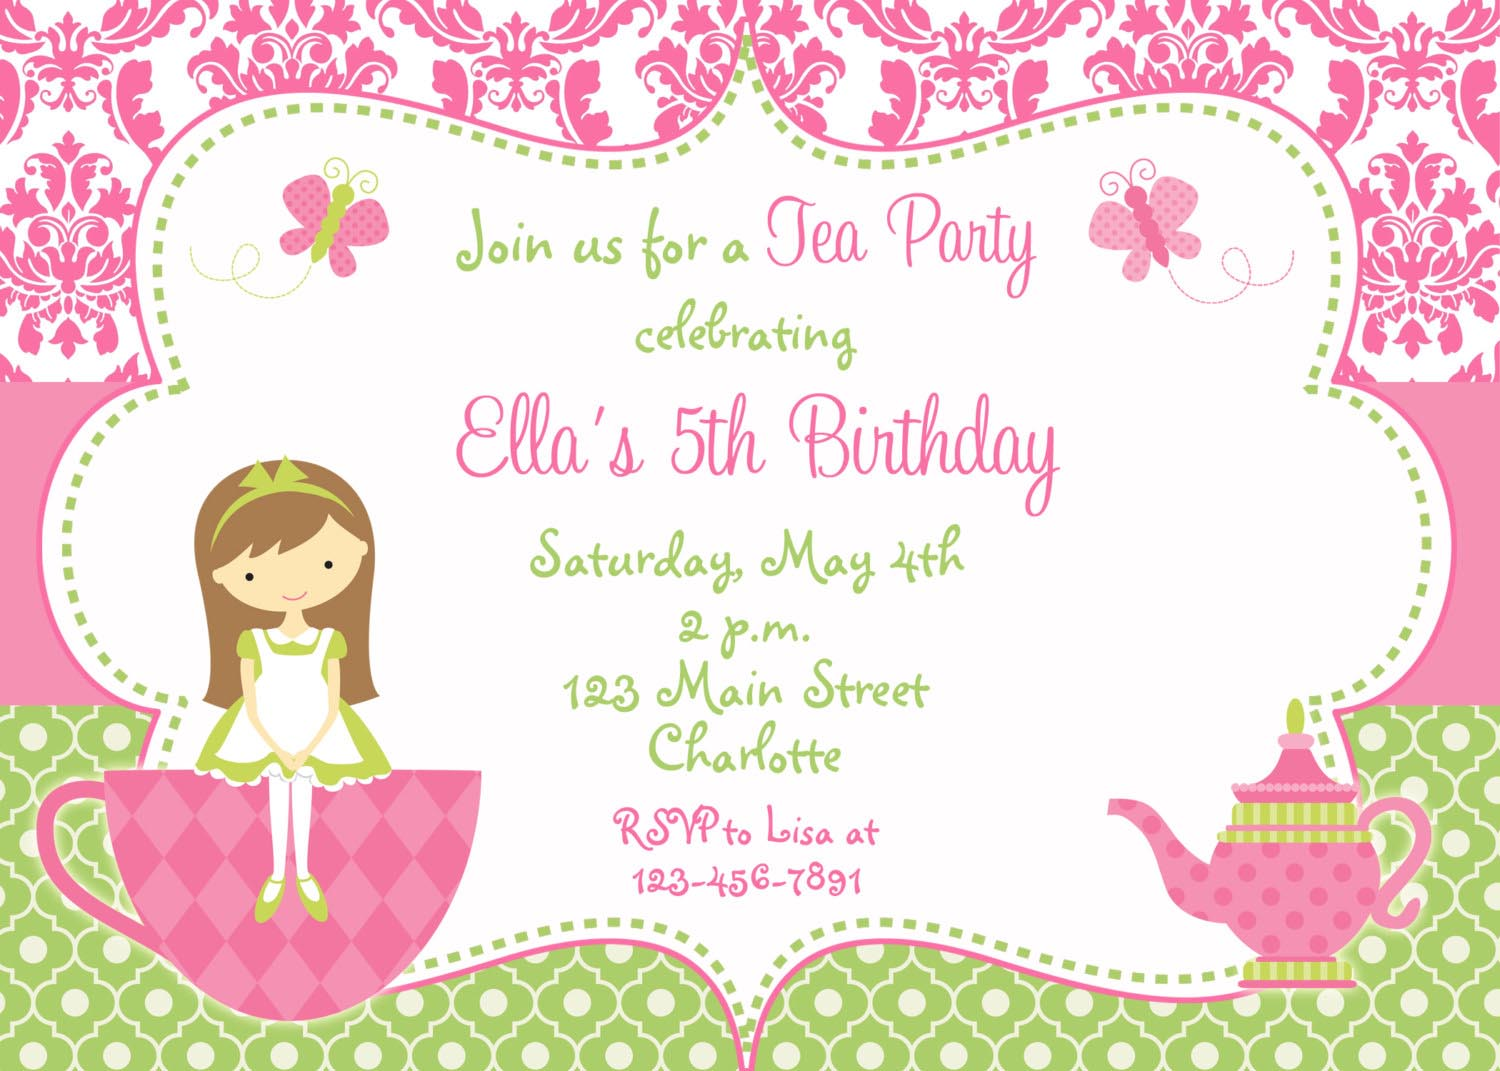 Princess Party Invitations Wording | Home Party Ideas